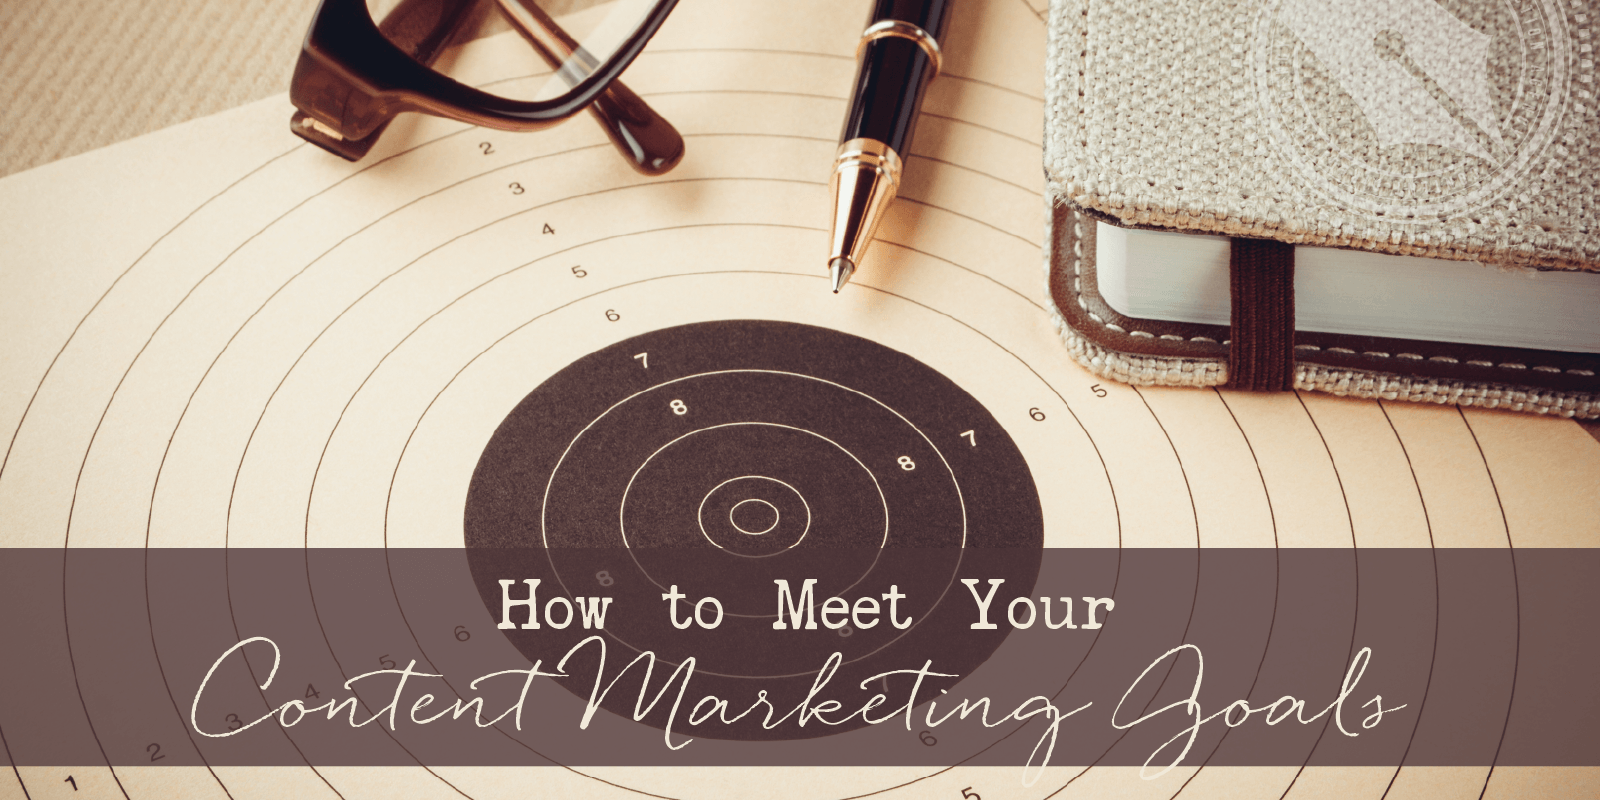 How to Meet Your Content Marketing Goals